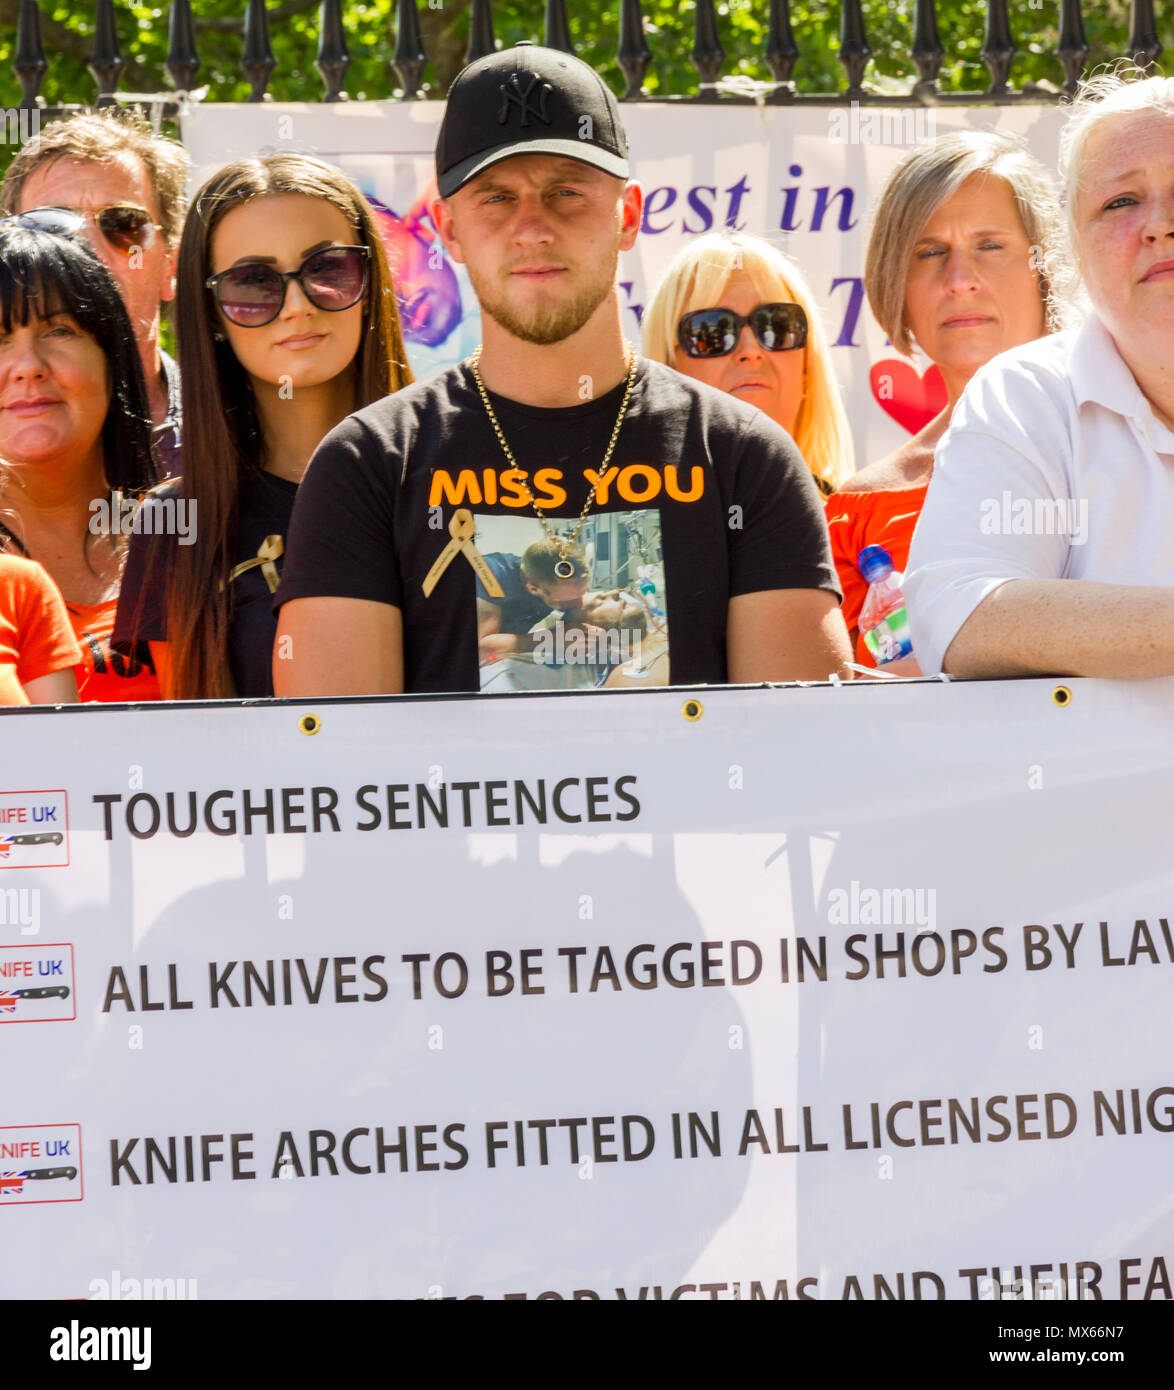 Downing Street, London, UK. 3rd June 2018. This morning, families of knife crime victims, their friends and supporters gather opposite 10 Downing street, prior to presenting The British Prime Minister Theresa May with a petition demanding action to curb the unacceptable levels of Knife Crime in London and across the United Kingdom. Credit: Alan Fraser/Alamy Live NewsStock Photo